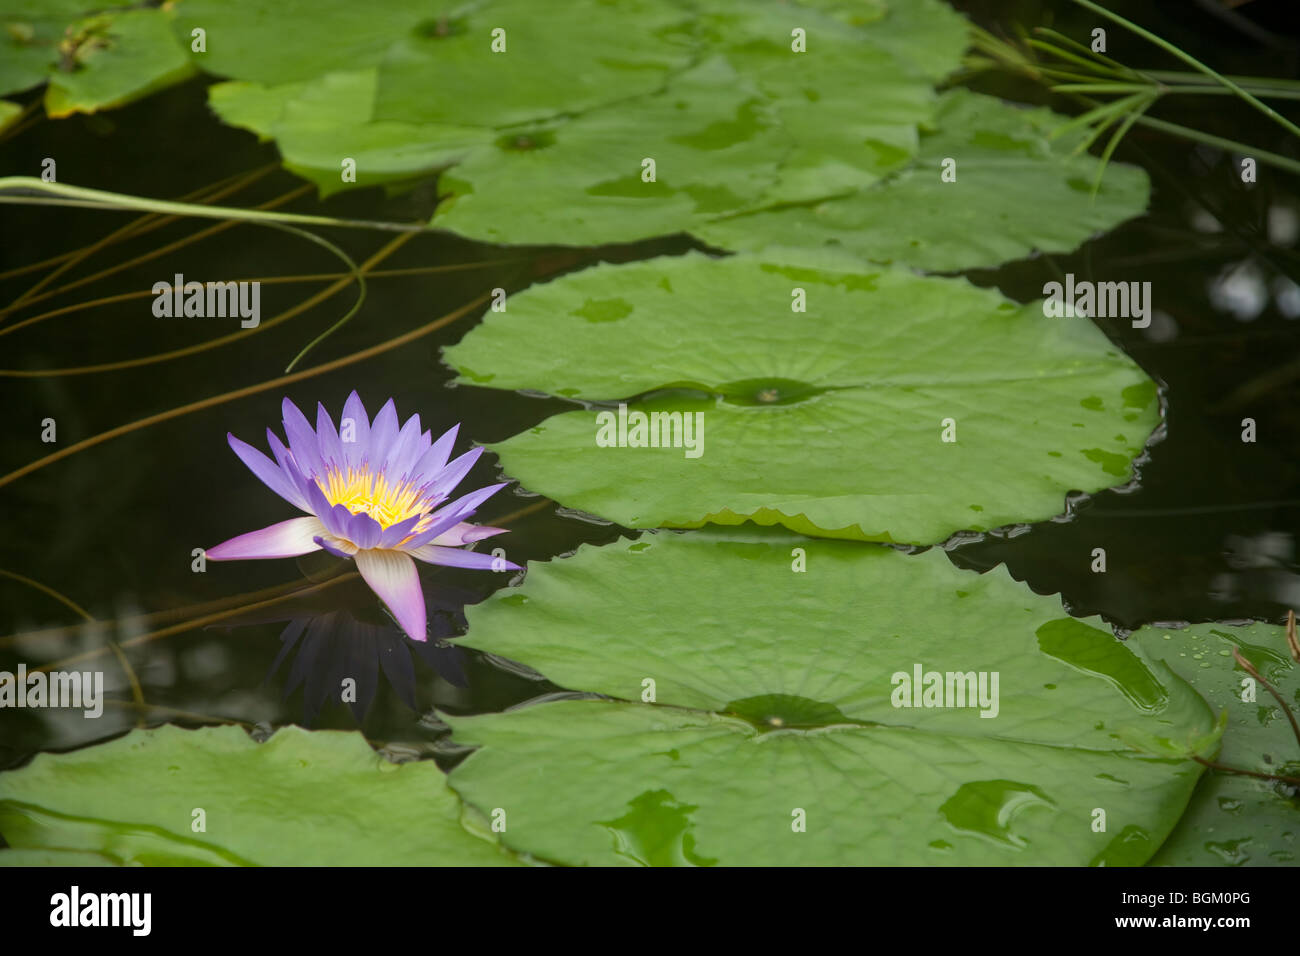 Lily pad with flower conservatory of flowers golden gate park san lily pad with flower conservatory of flowers golden gate park san francisco california usa izmirmasajfo